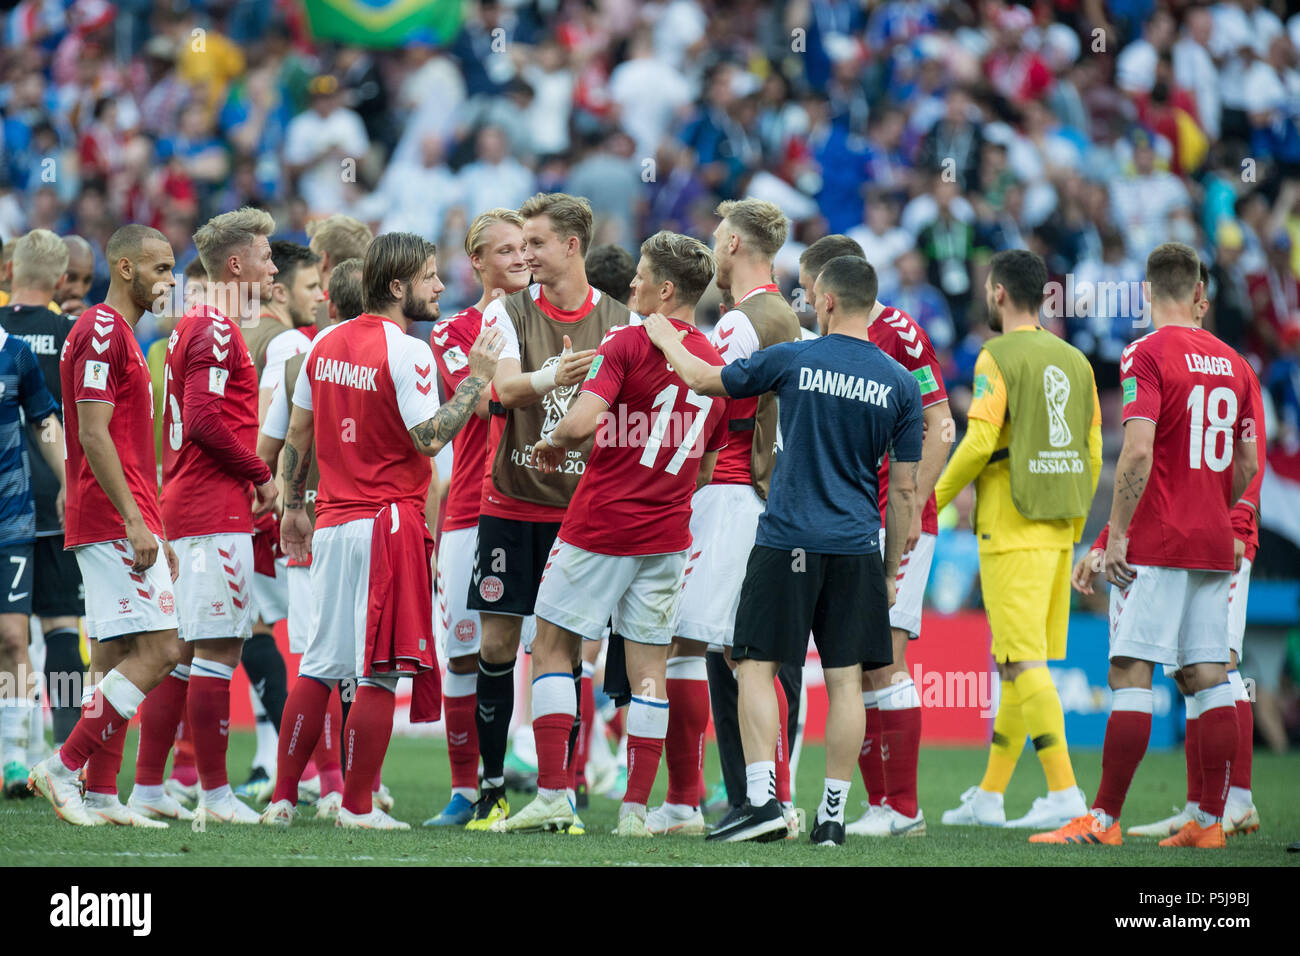 ba0bb9371 The Danish players are very well informed. Janitor Krause wssre here  probably end, whole